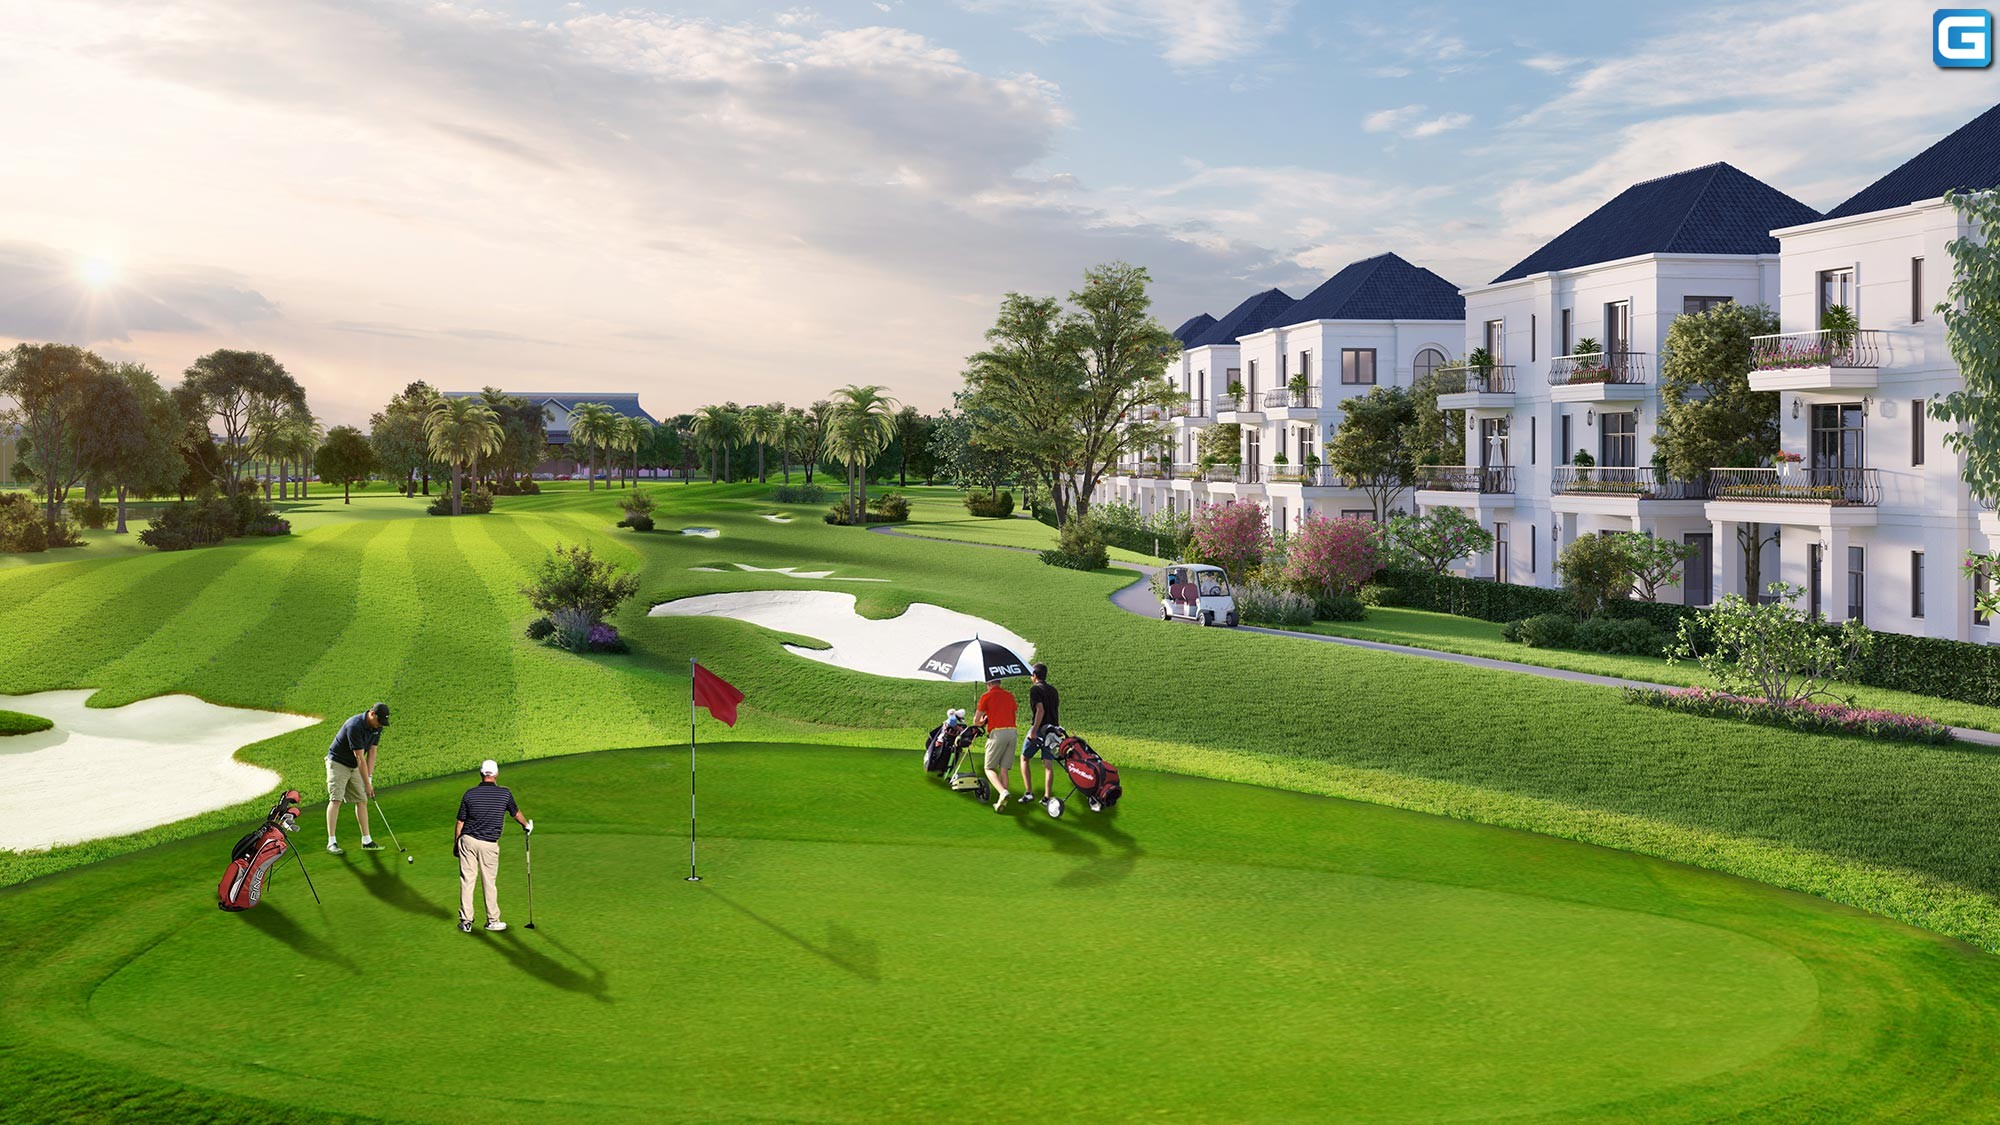 Dự án biệt thự West Lakes Golf & Villas Long An